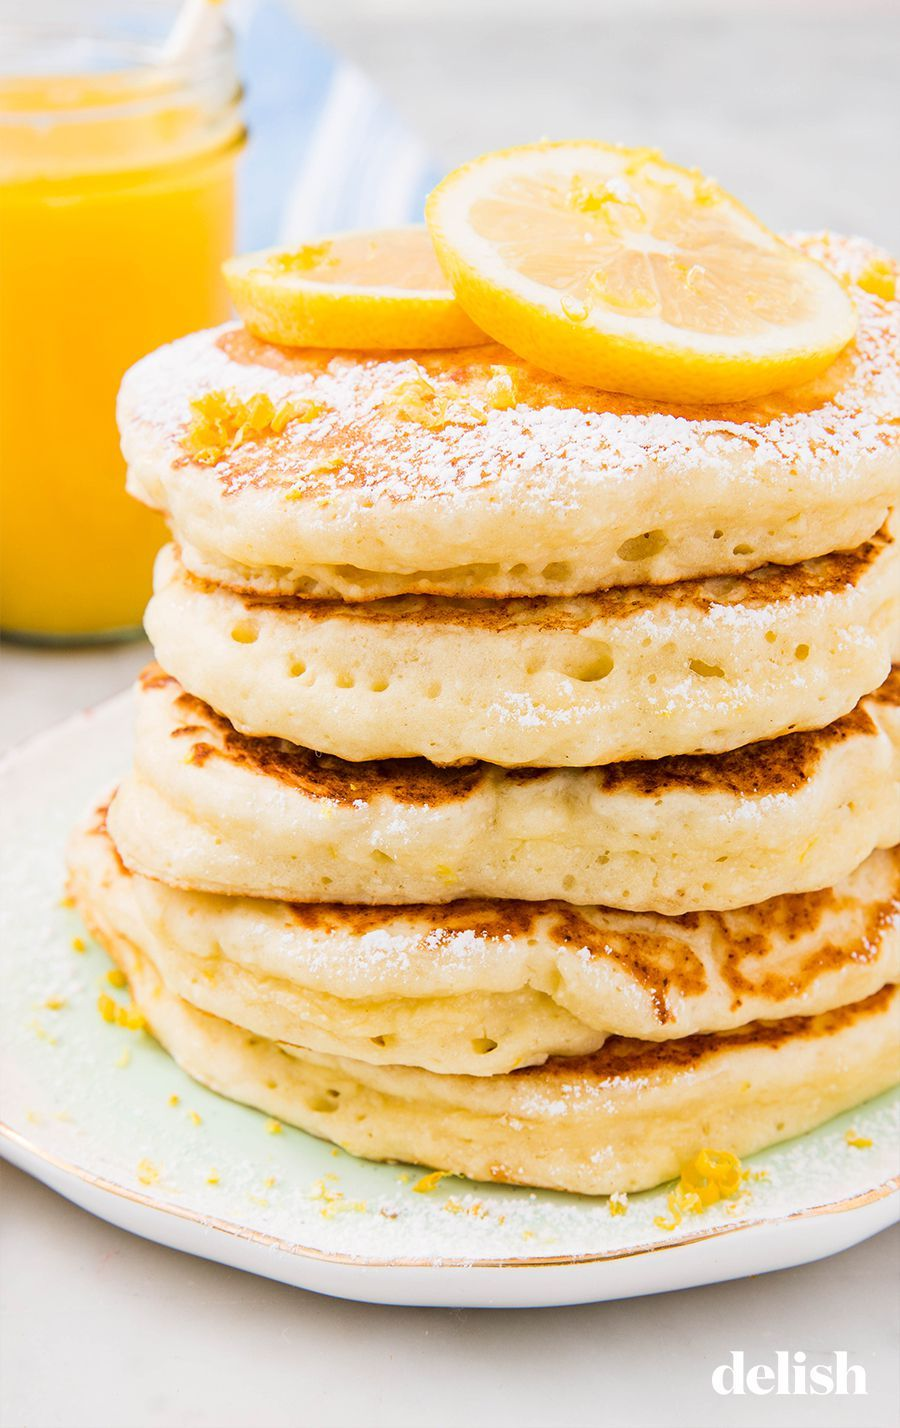 Lemon Ricotta Pancakes Are Ultimate Brunch Goals Recipe Ricotta Pancakes Recipes Ricotta Pancakes Lemon Ricotta Pancakes